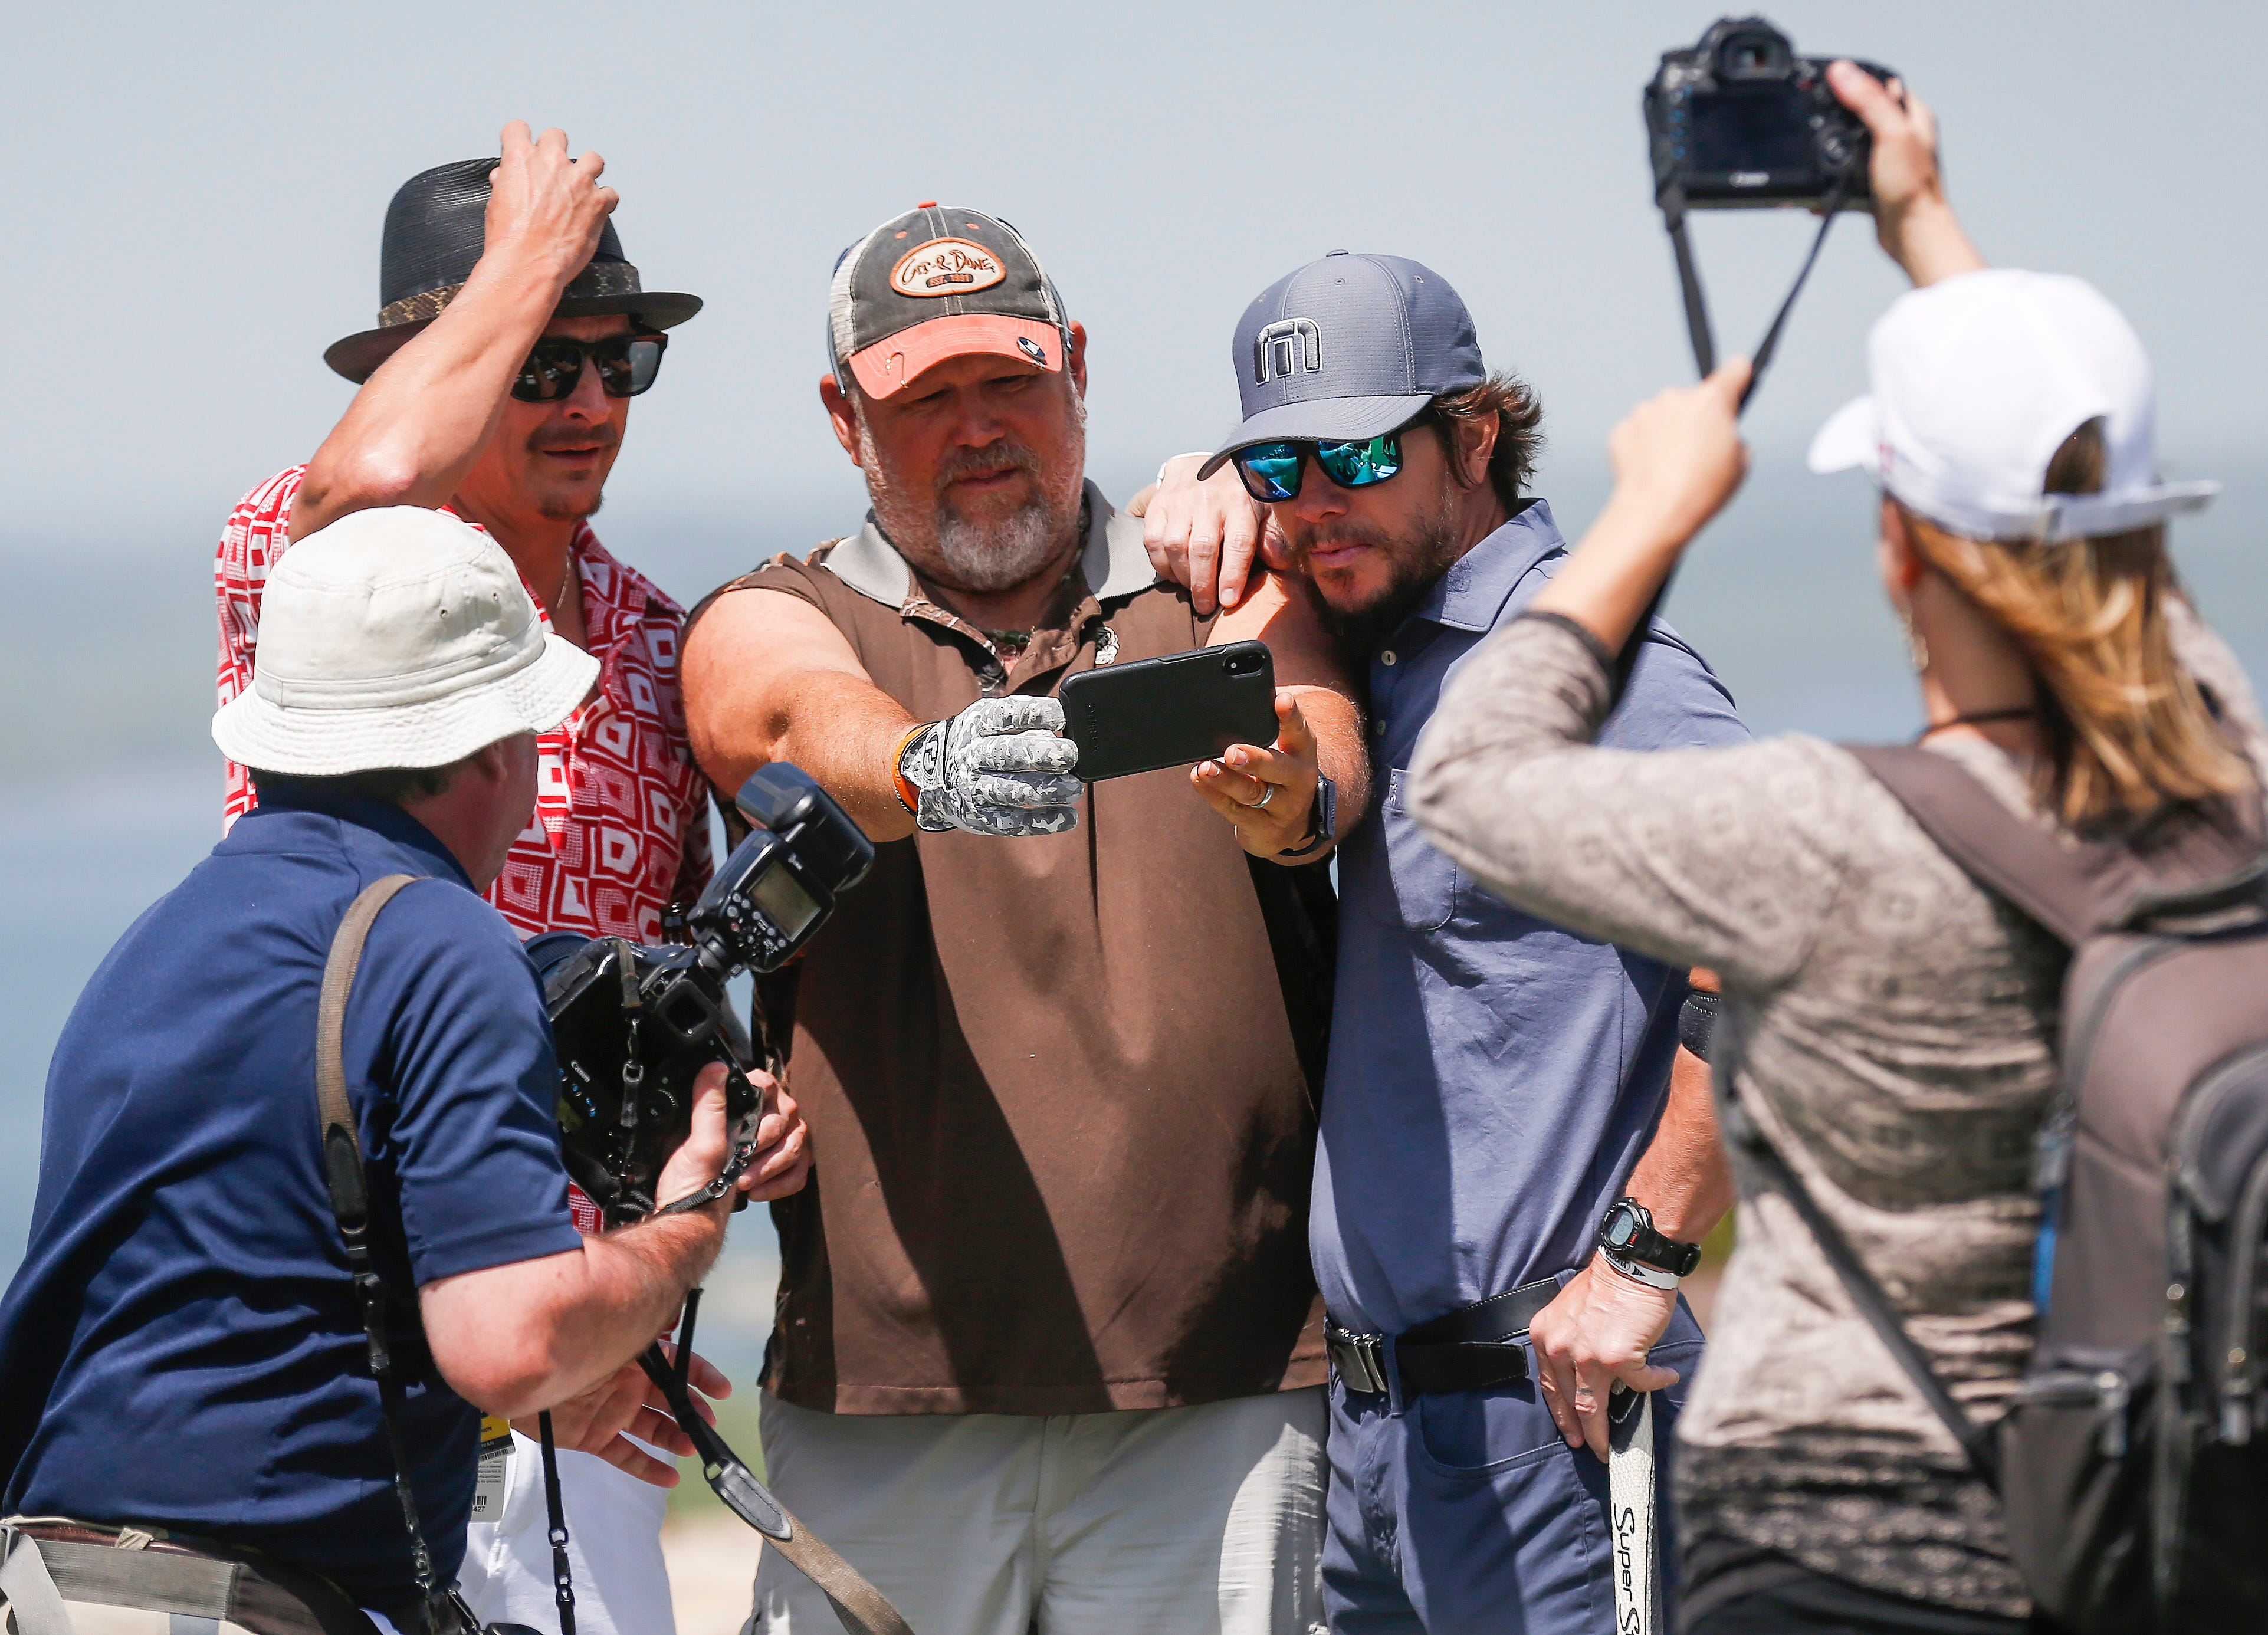 From left, Kid Rock, Larry the Cable Guy, and Mark Wahlberg take a selfie at the Bass Pro Shops Legends Competition at Top of the Rock on Saturday, April 27, 2019.